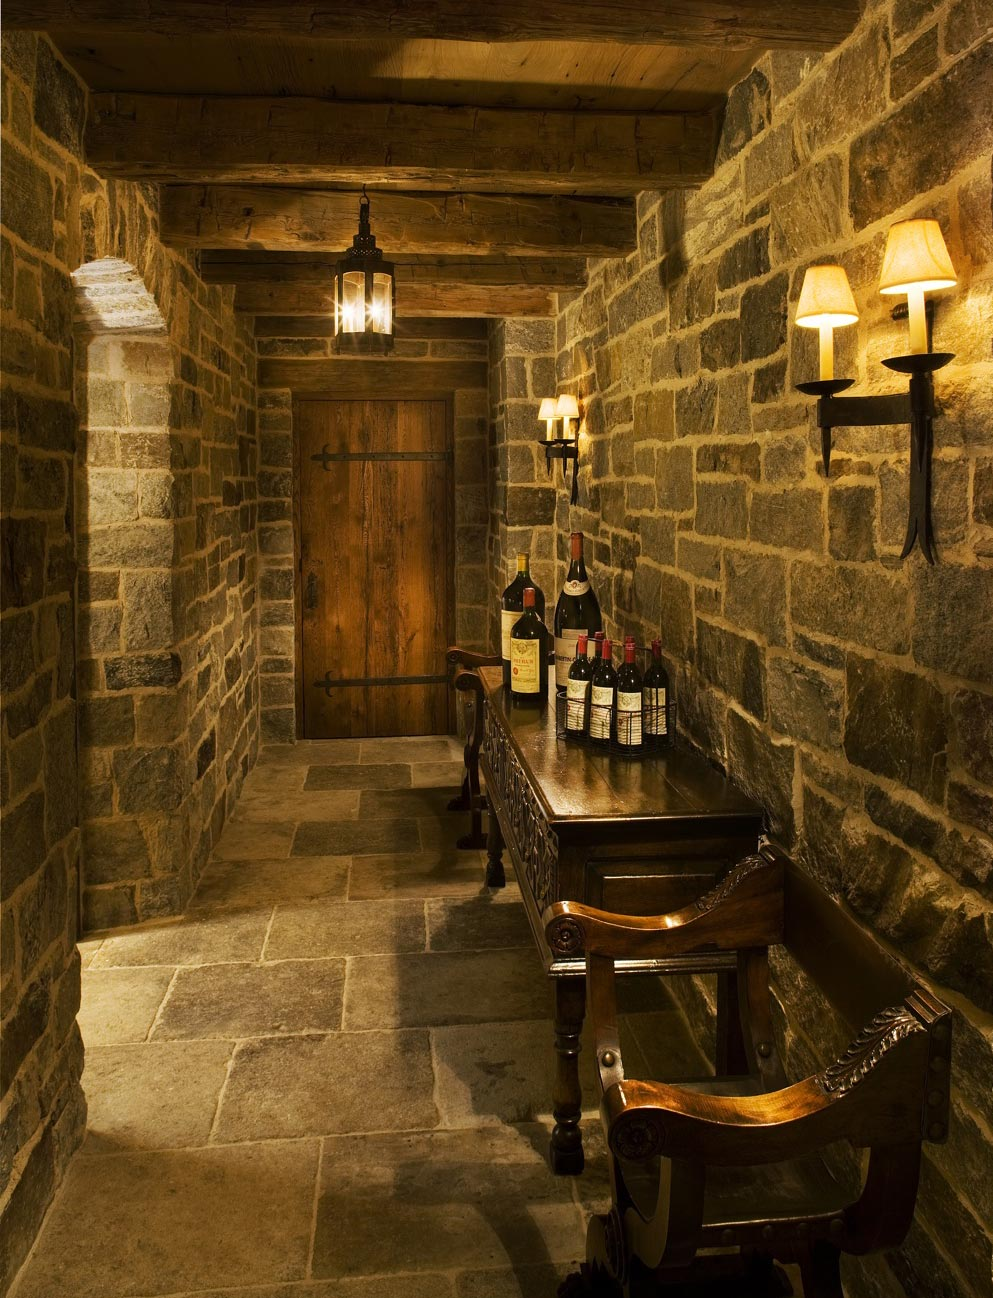 Enjoyable A New Wine Cellar G P Schafer Architects Interior Design Ideas Tzicisoteloinfo